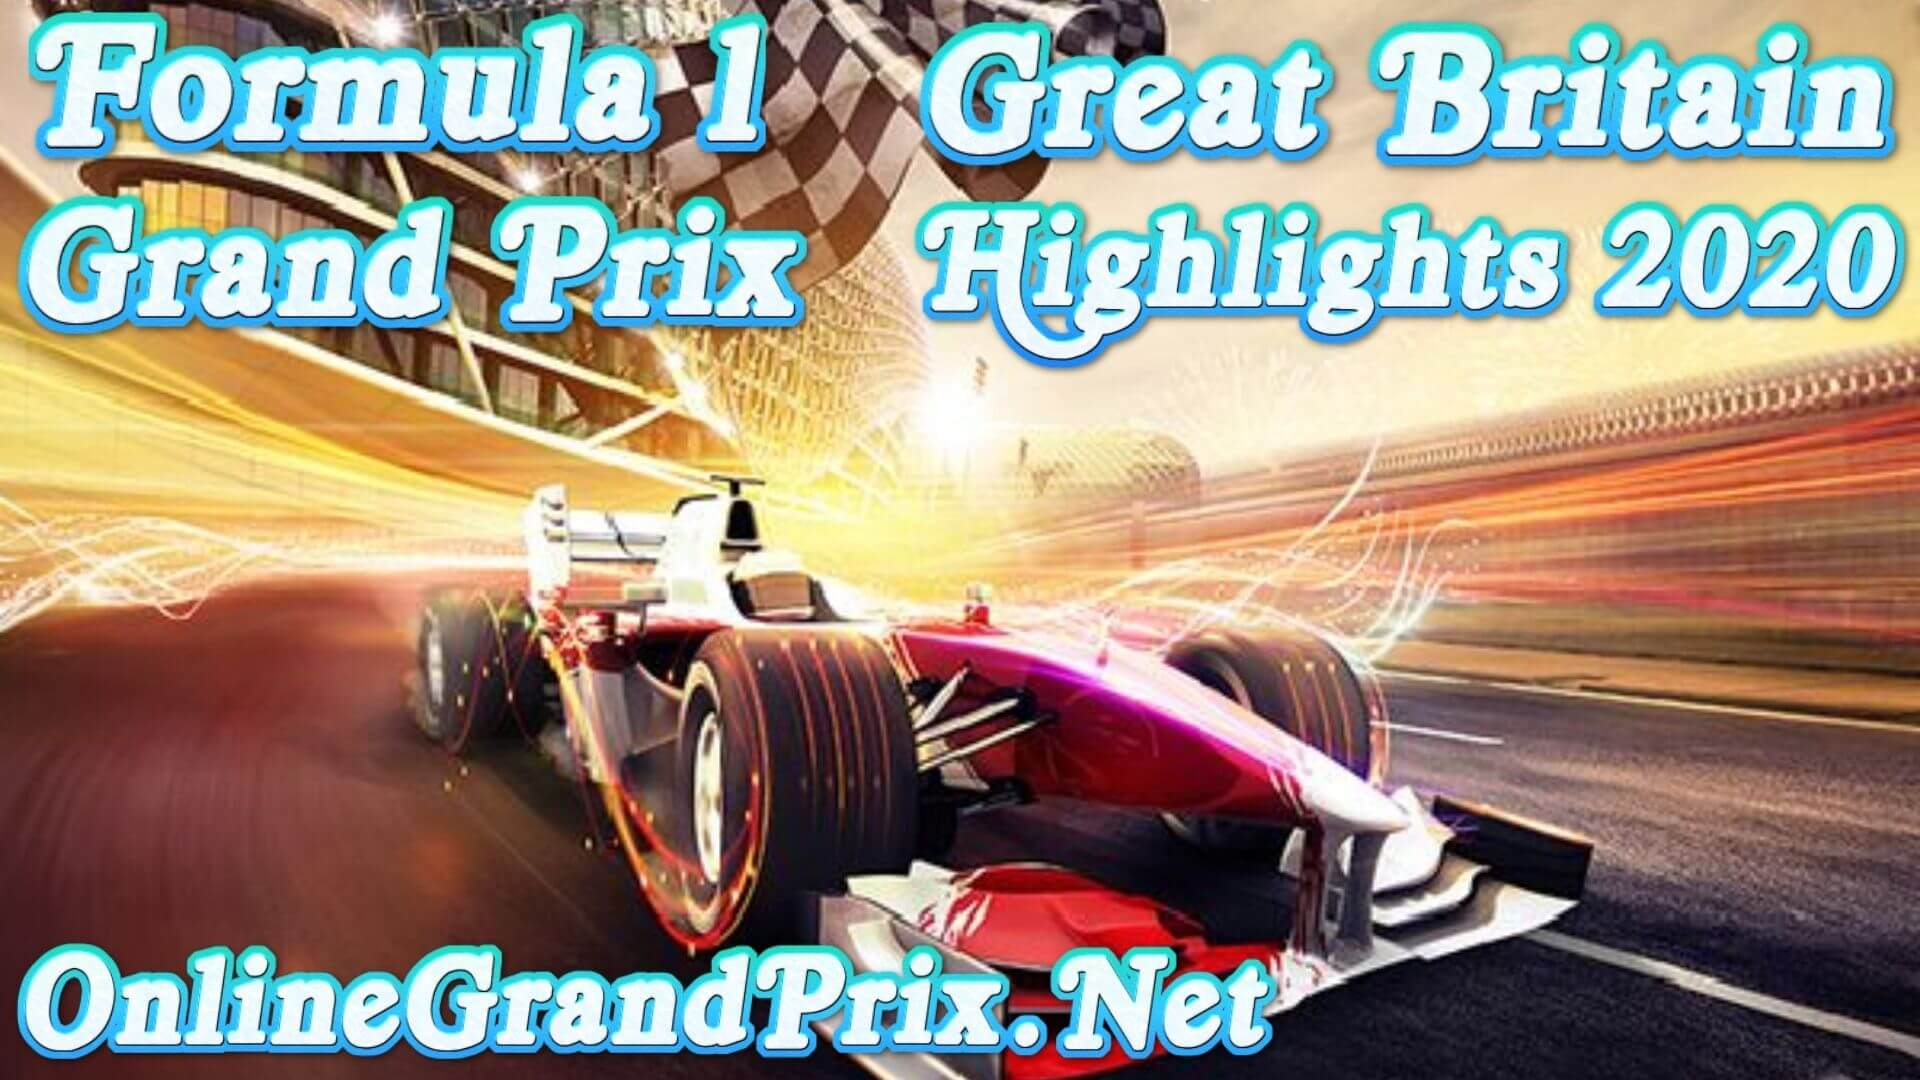 Great Britain GP F1 Highlights 2020